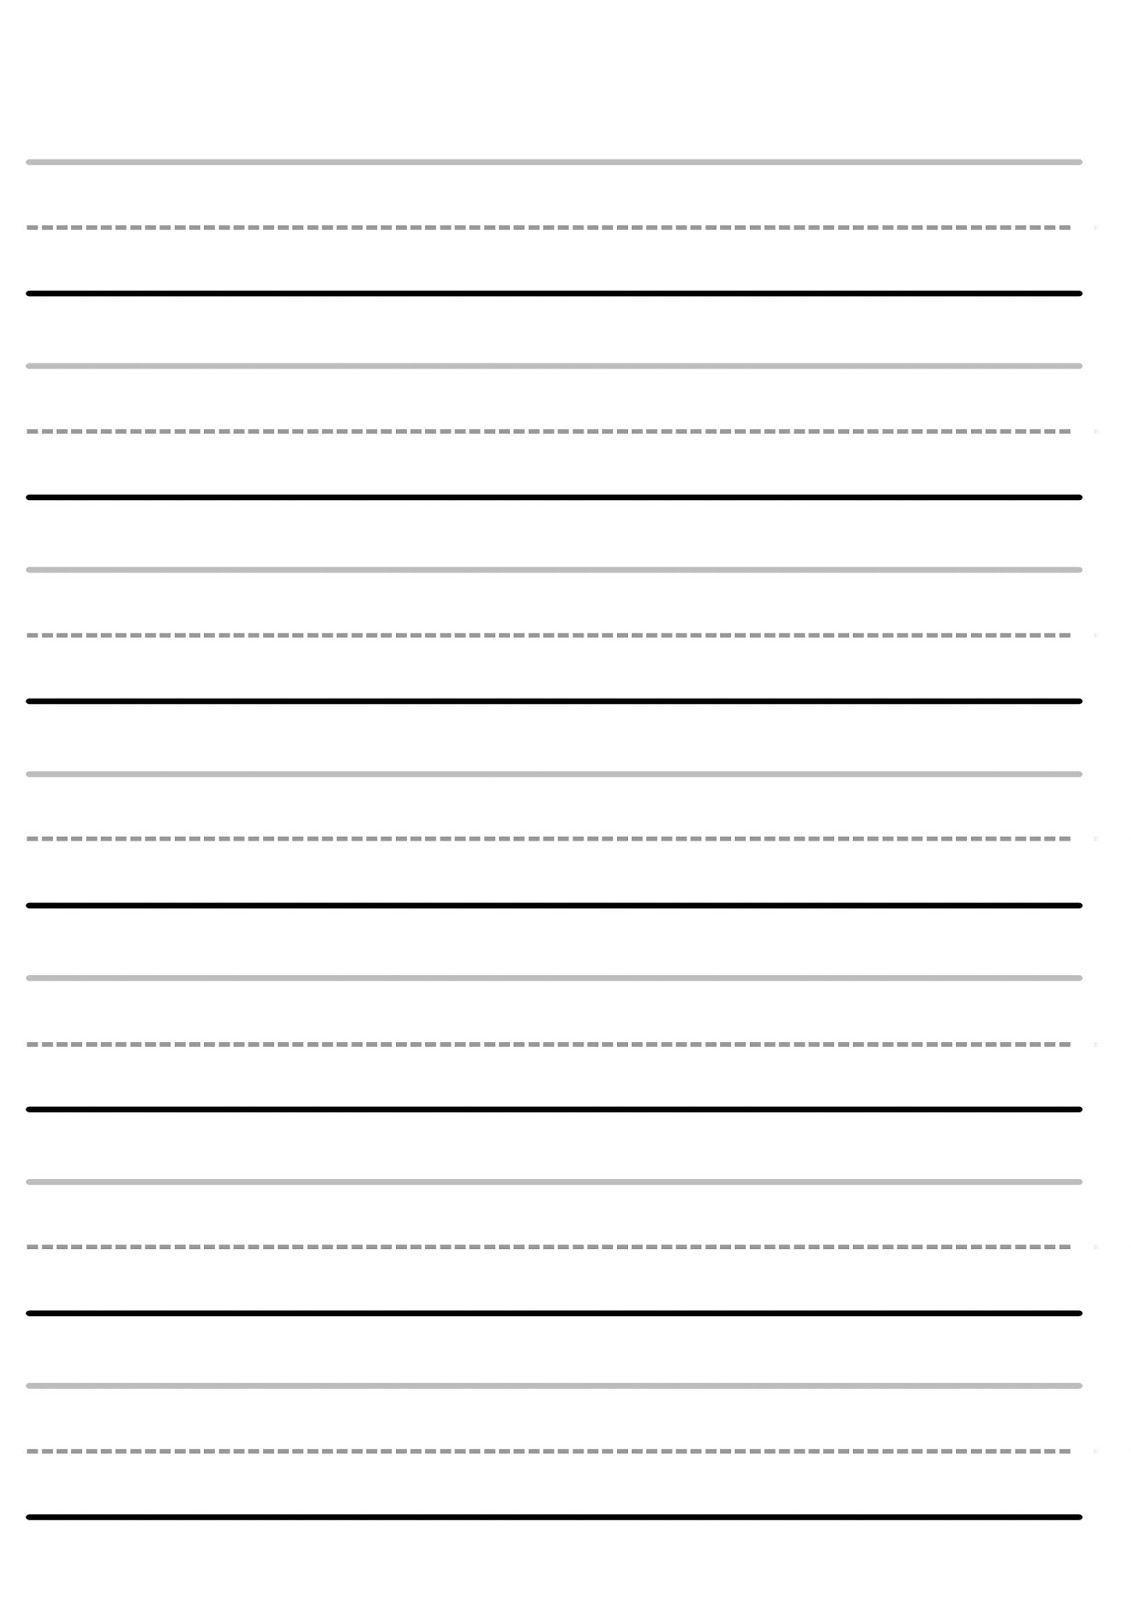 Worksheet Blank Handwriting : Letter tracing worksheets letters u z